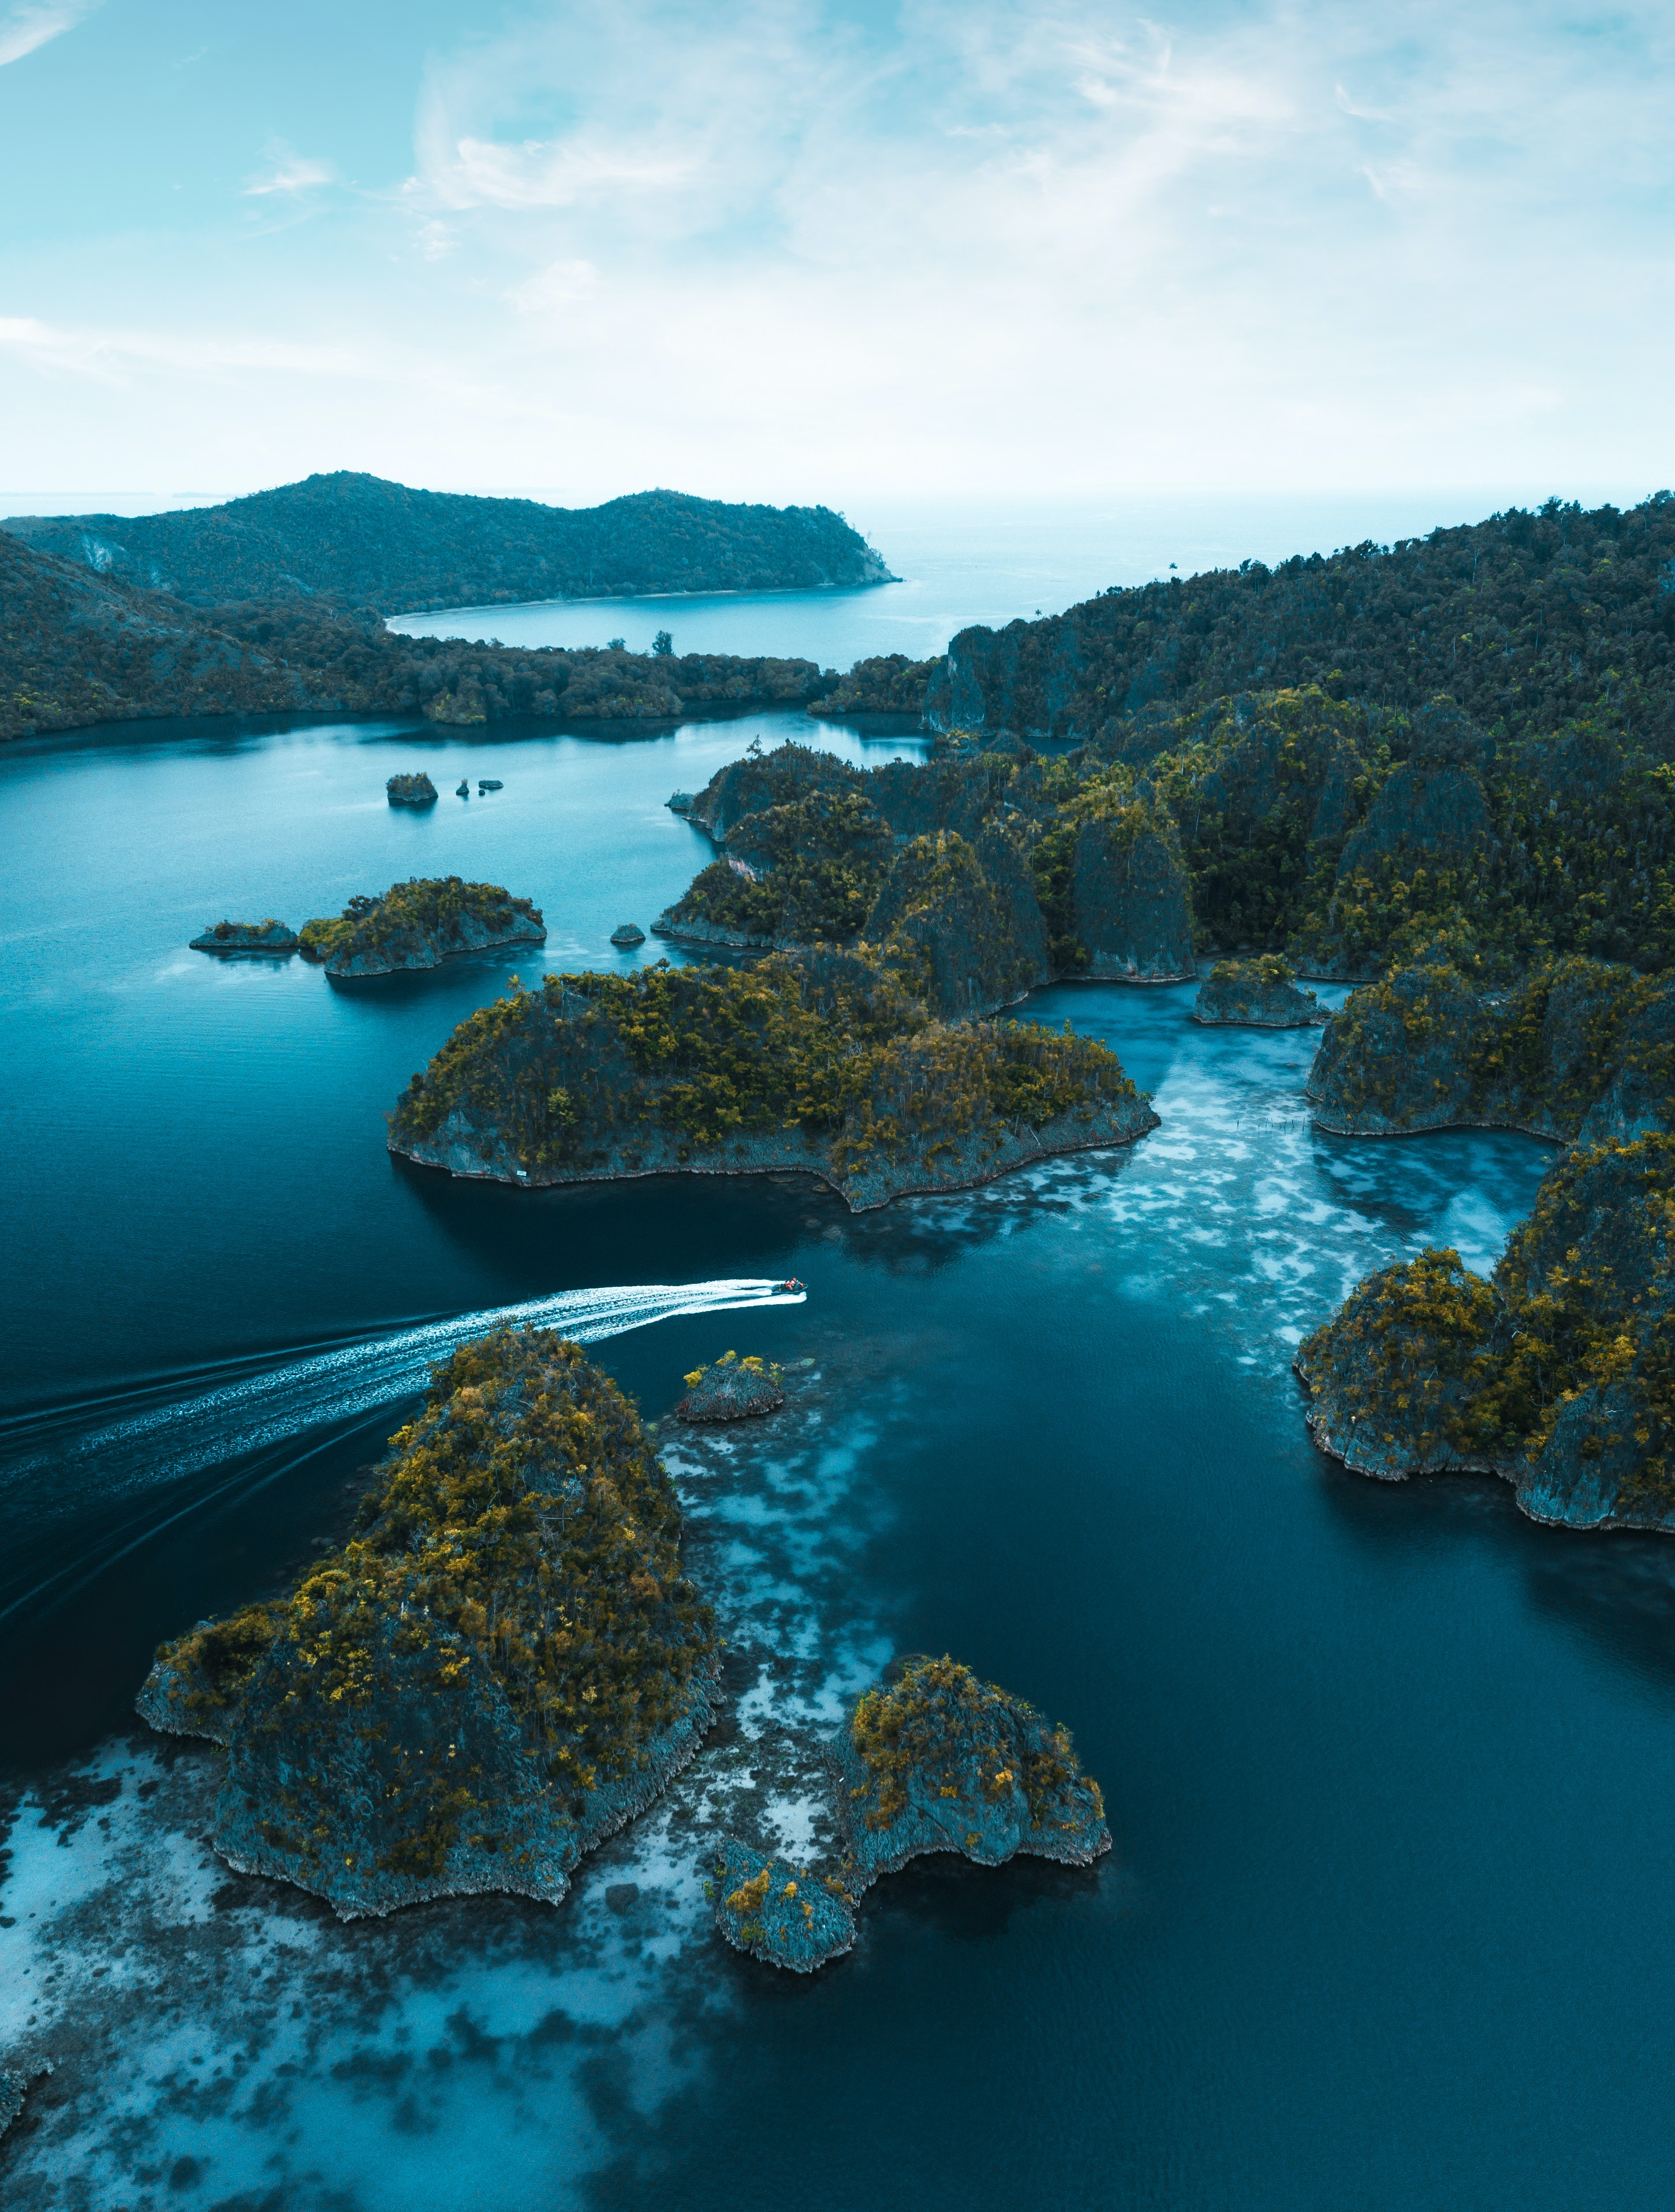 Aerial Photo of Islands on Sea by Stijn Dijkstra